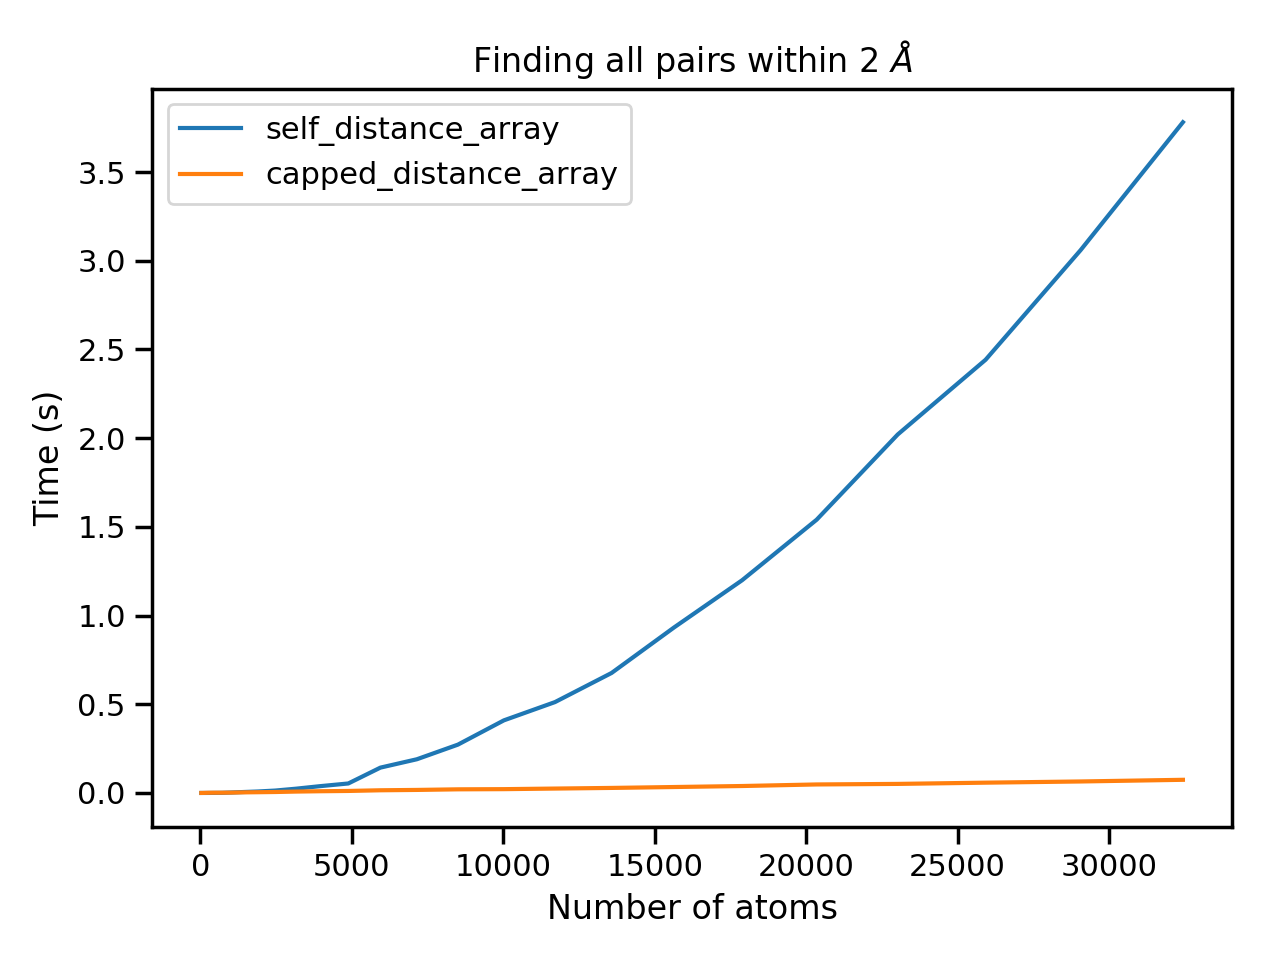 Timing the performance of the new capped distance methods in